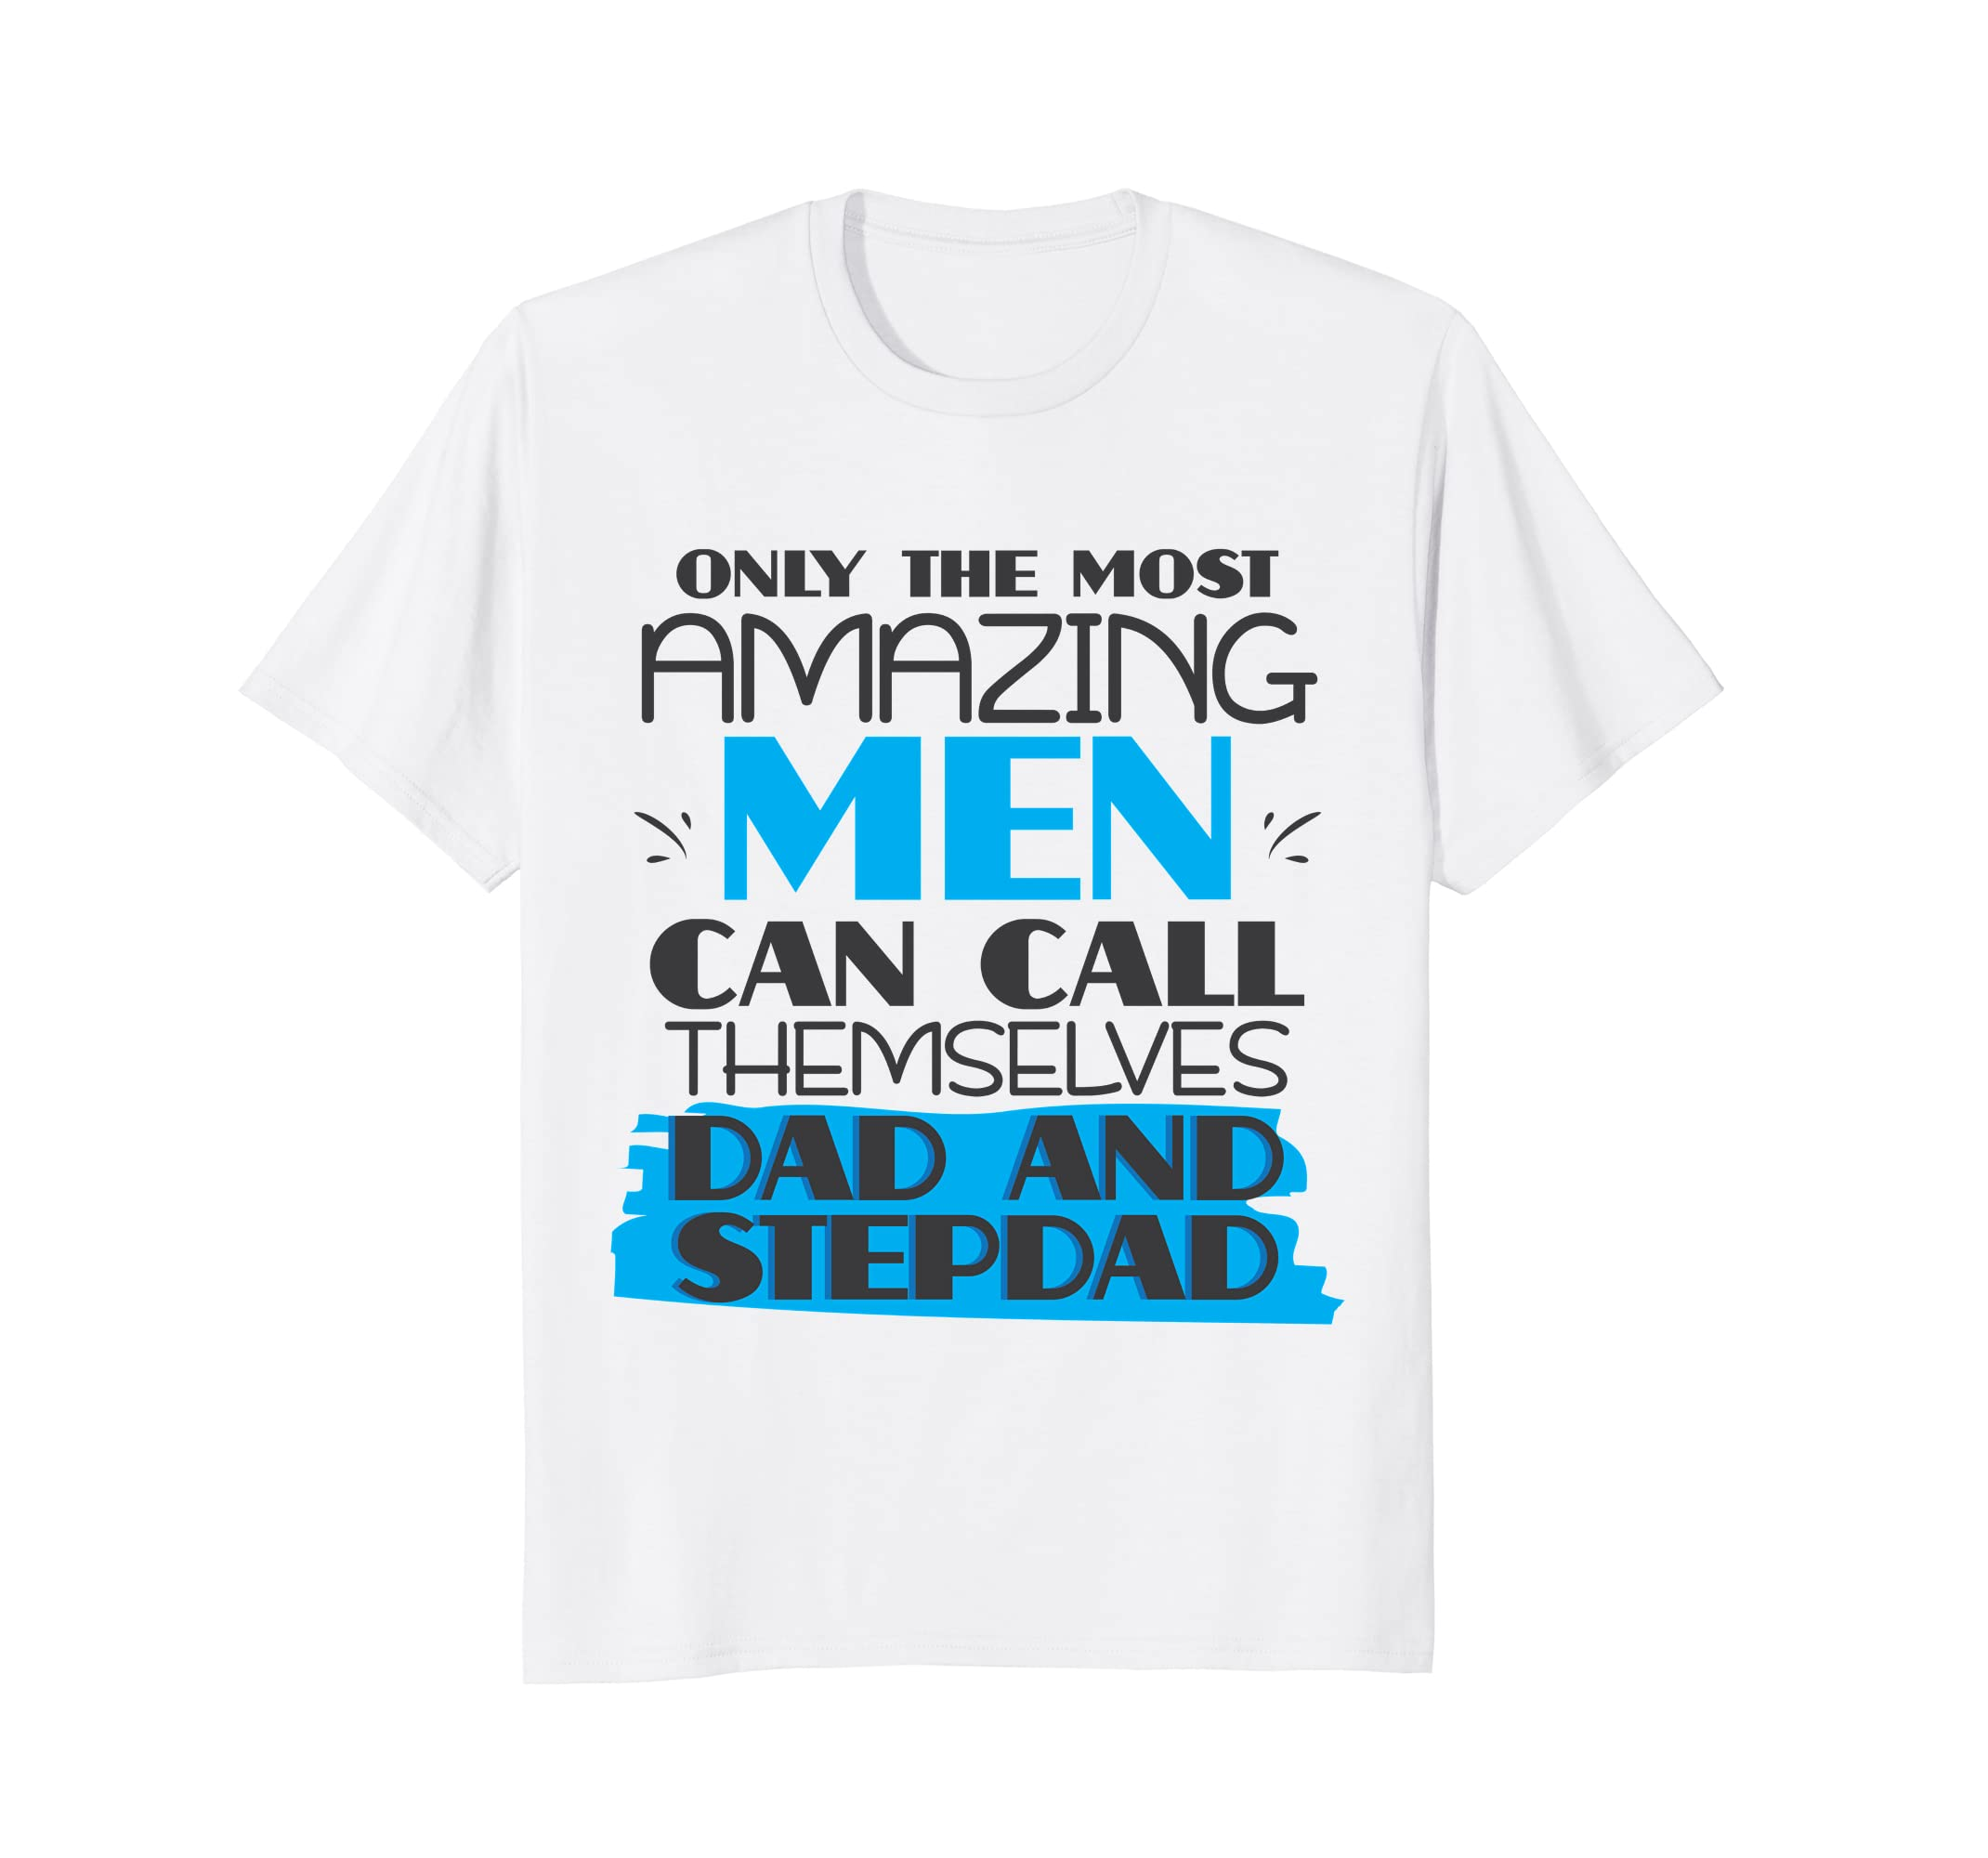 4a15a5bd Amazon.com: Only Most Amazing Men Call Dad Stepdad T-shirt Funny Gift:  Clothing